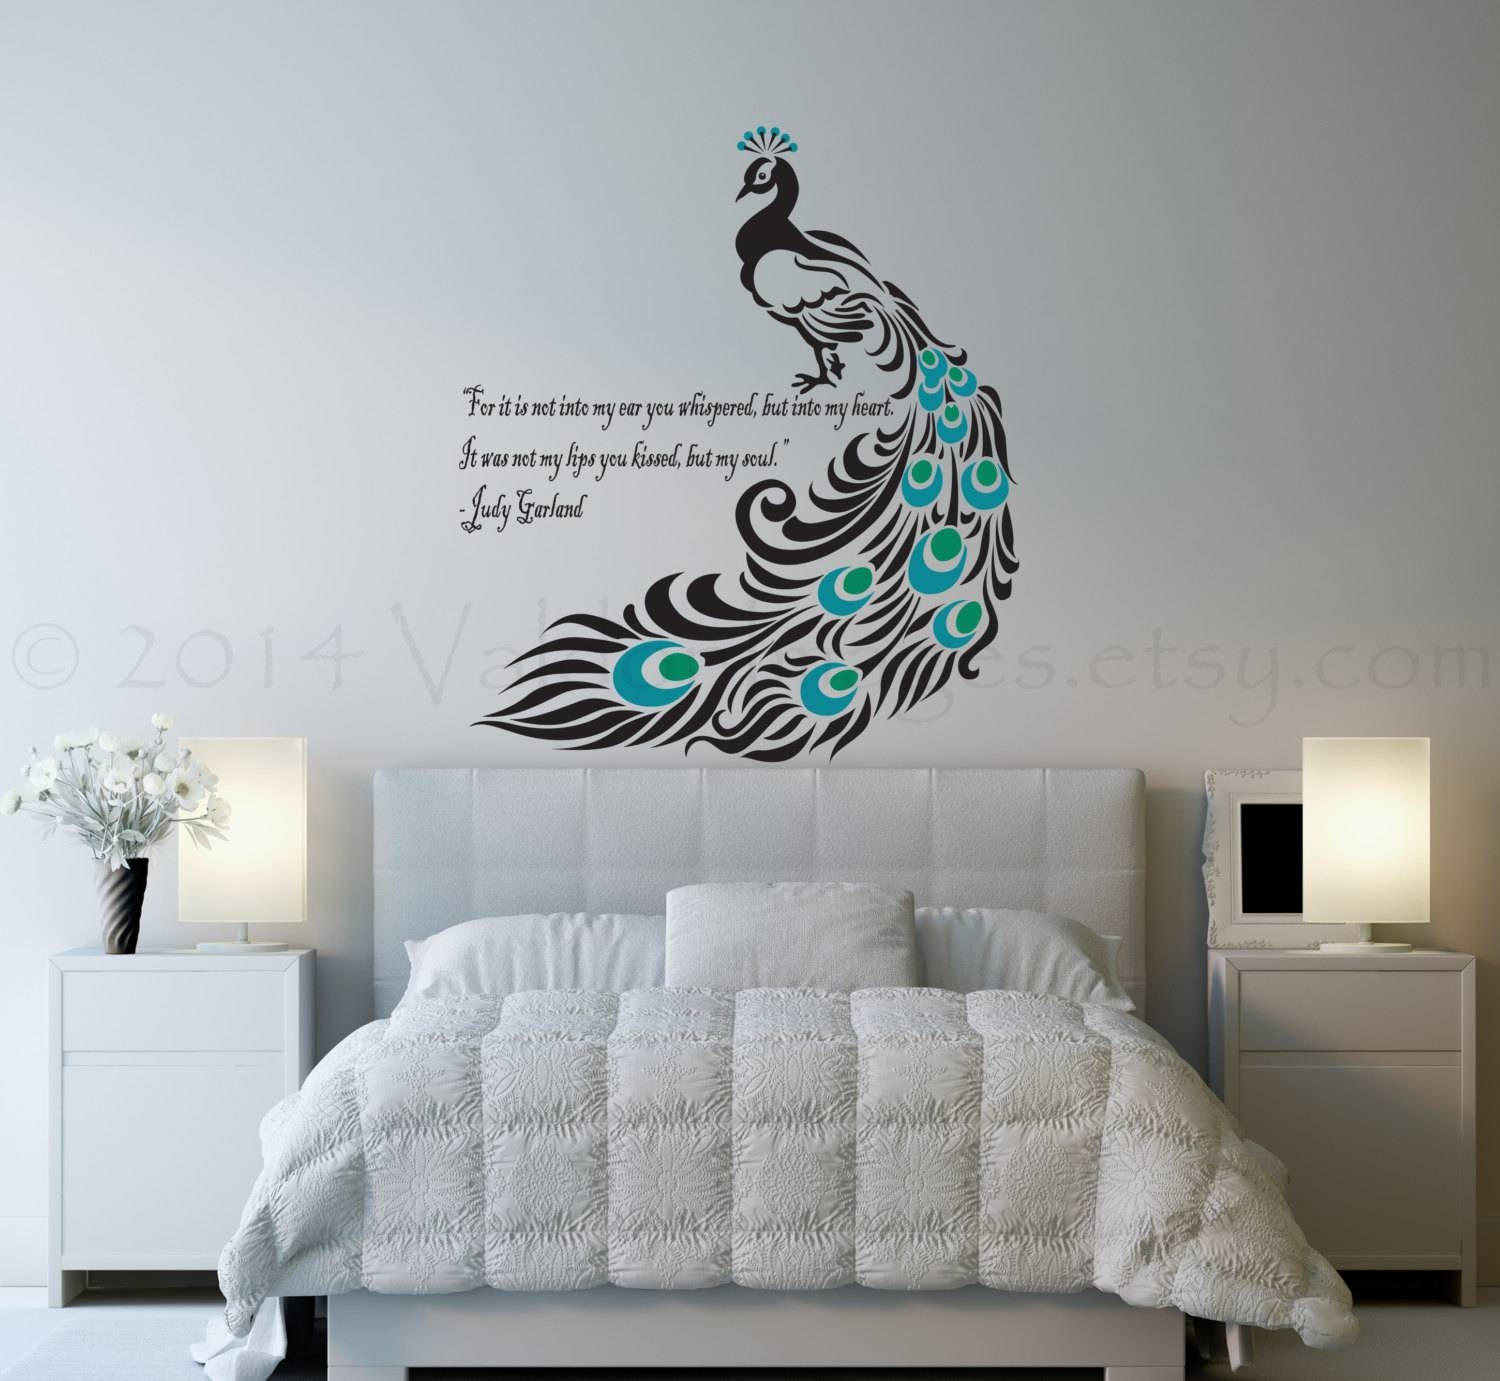 Emejing Wall Art Ideas For Bedroom Images – Decorating Design Throughout Most Recently Released Bed Wall Art (View 16 of 25)